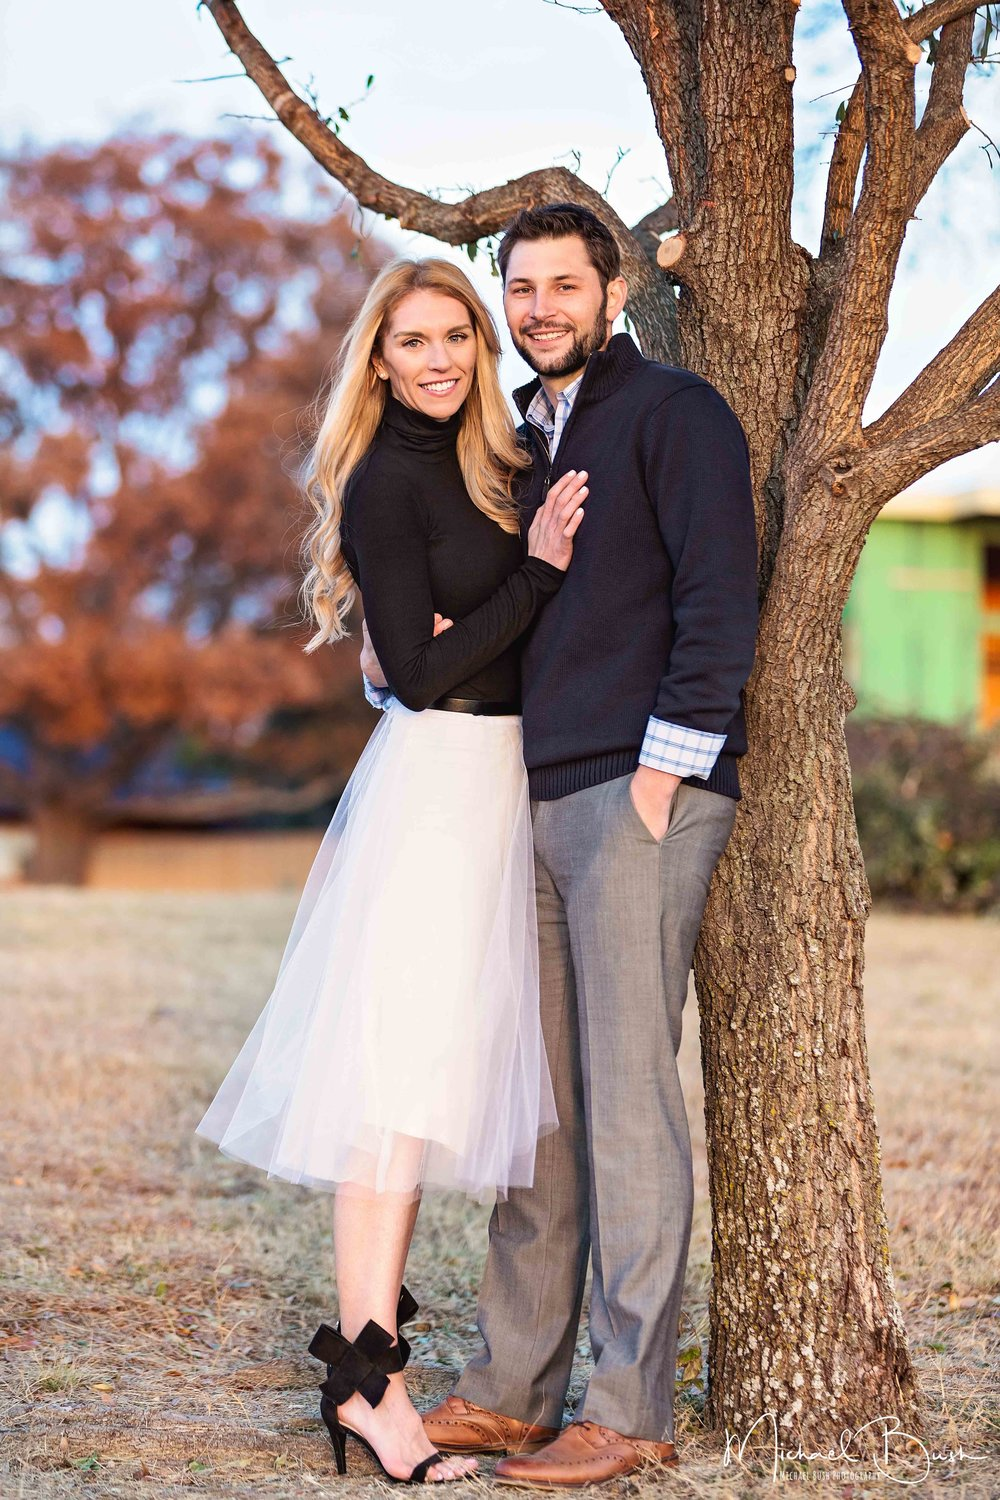 Dallas-Engagements-WhiteRockLake-Sky-DallasSkyline-fall-winter-weddingphotographer.jpg